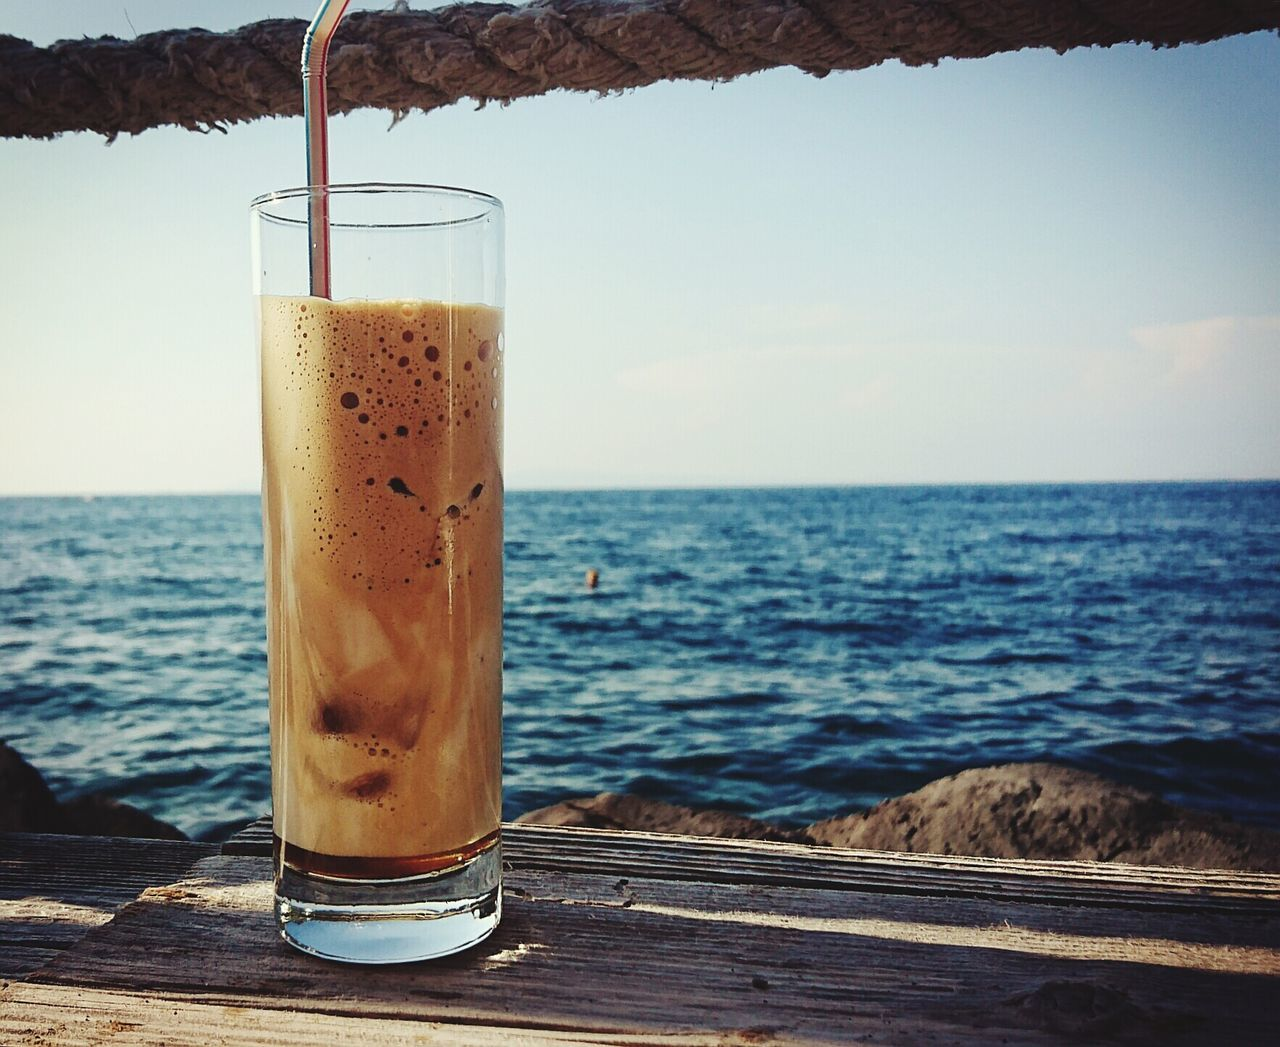 sea, drink, refreshment, water, food and drink, horizon over water, table, day, no people, outdoors, freshness, drinking glass, beach, sky, close-up, nature, beauty in nature